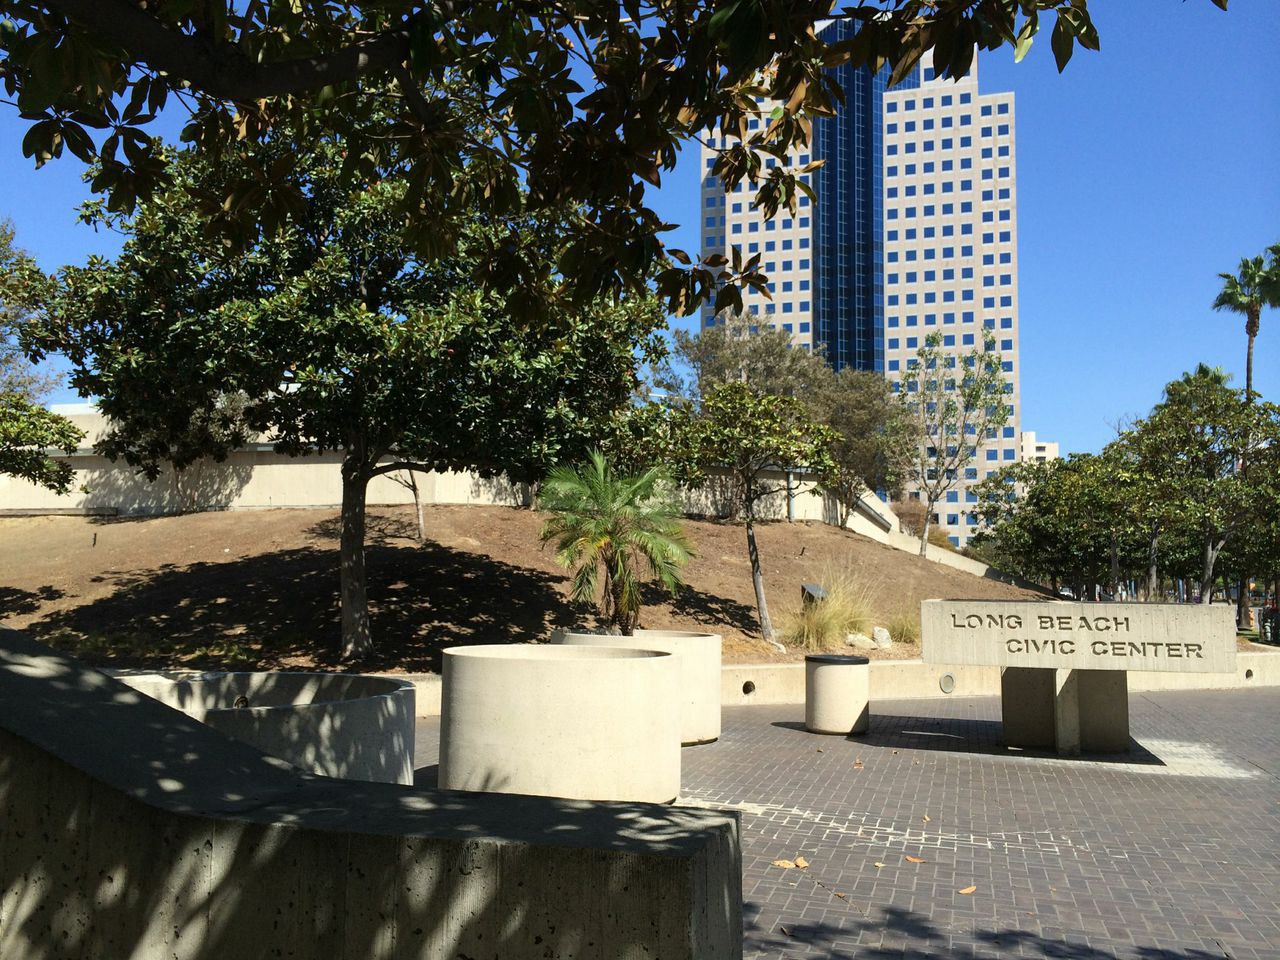 Right Access To Rooftop Garden Of Public Library Denied Photos Courtesy Mimi Zeiger